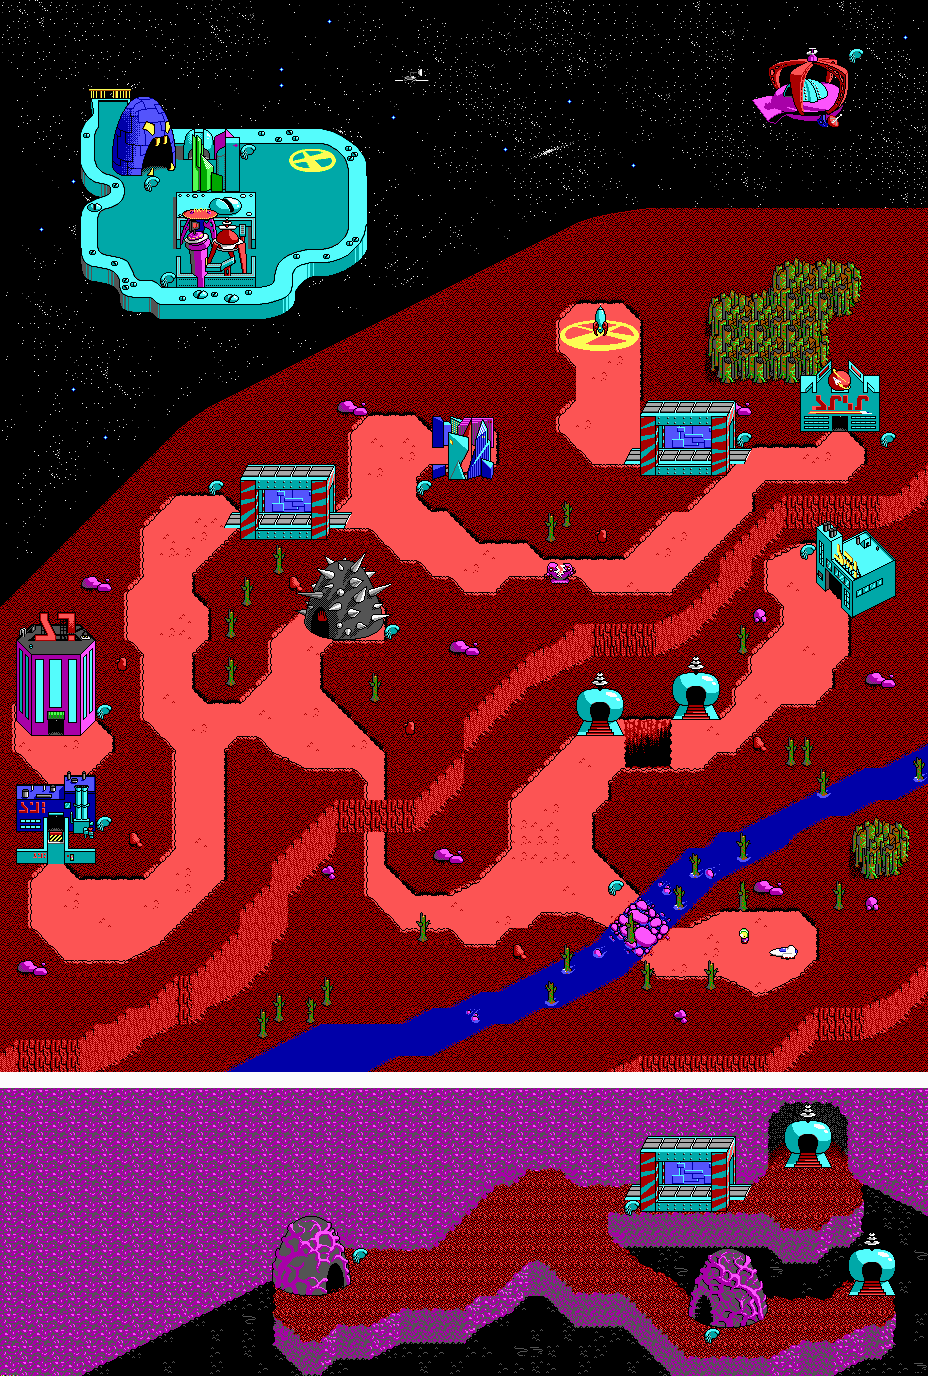 Commander Keen Maps \ Abandoned DOS Games